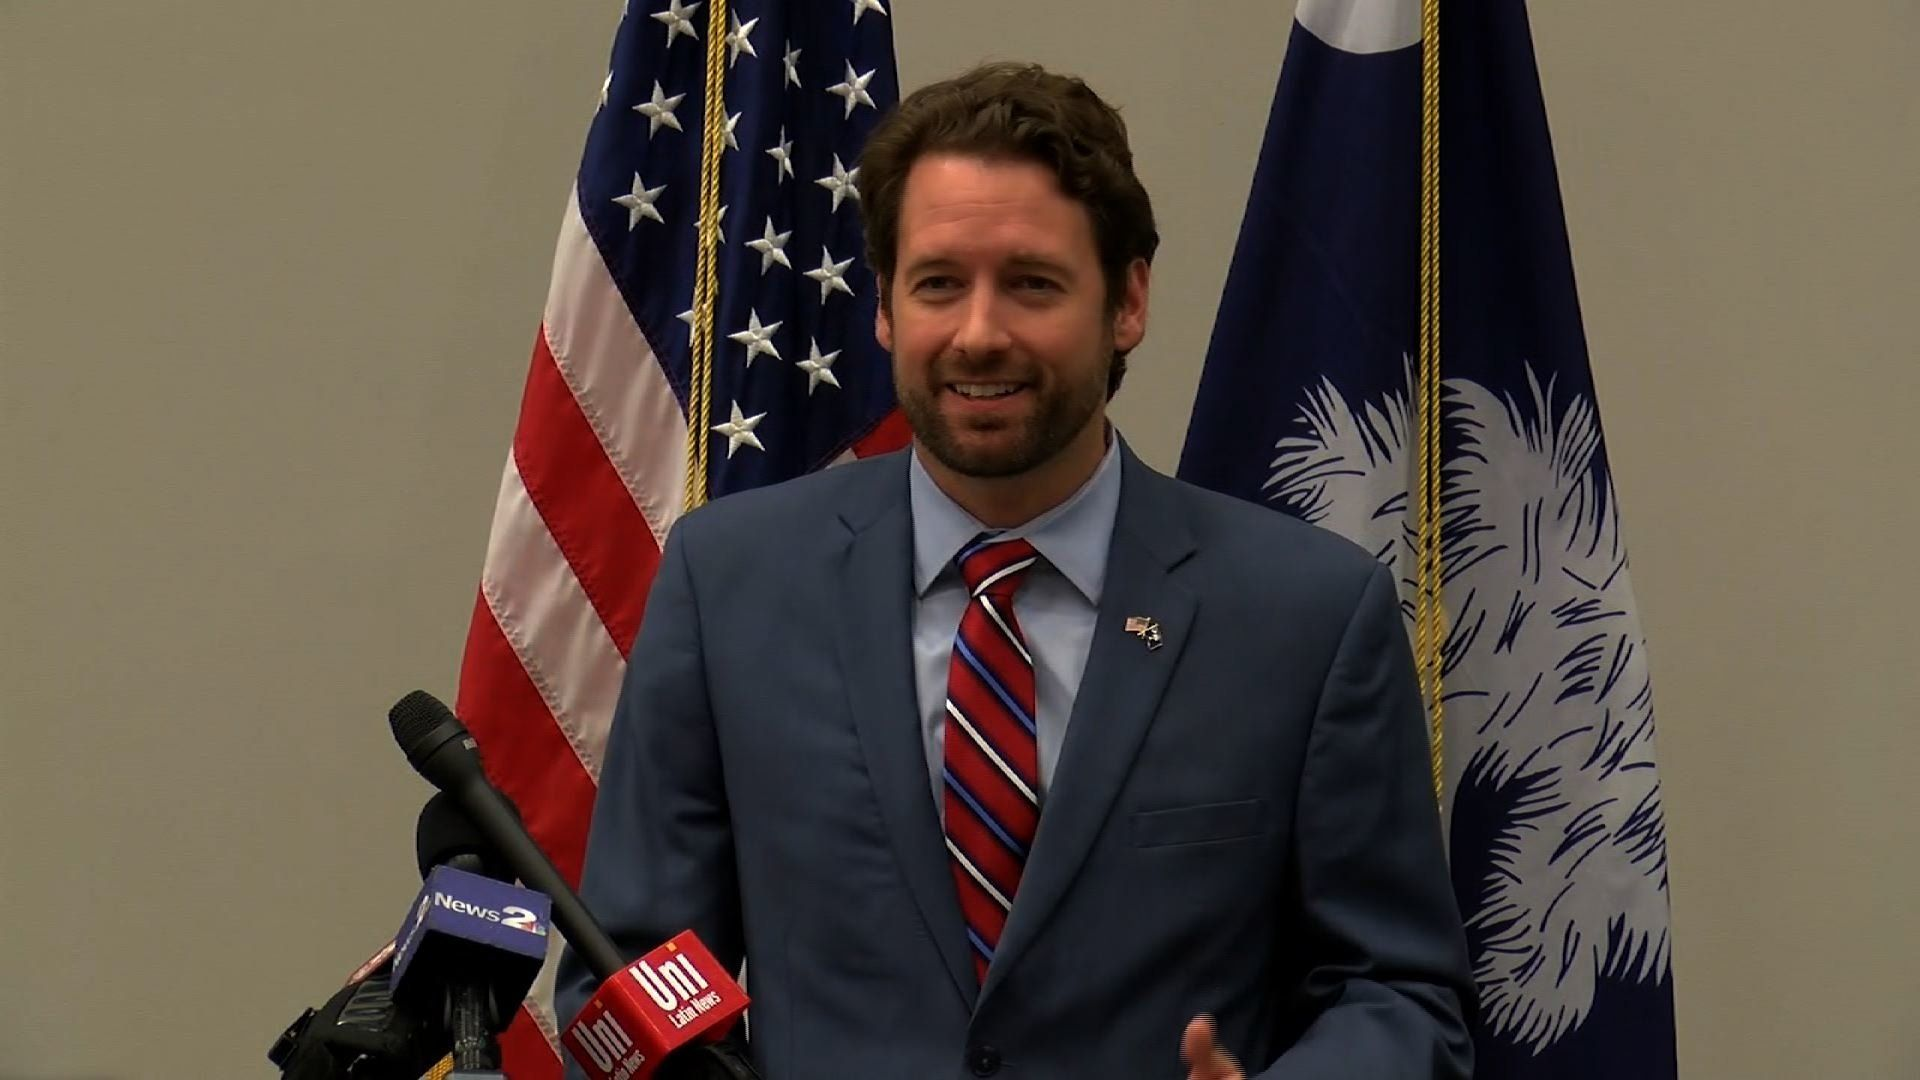 A U.S. house district that includes Charleston, South Carolina has elected a Democrat for the first time in 40 years. Attorney and ocean engineer Joe Cunningham flipped the seat from GOP control in Tuesday's elections. (Nov. 8)